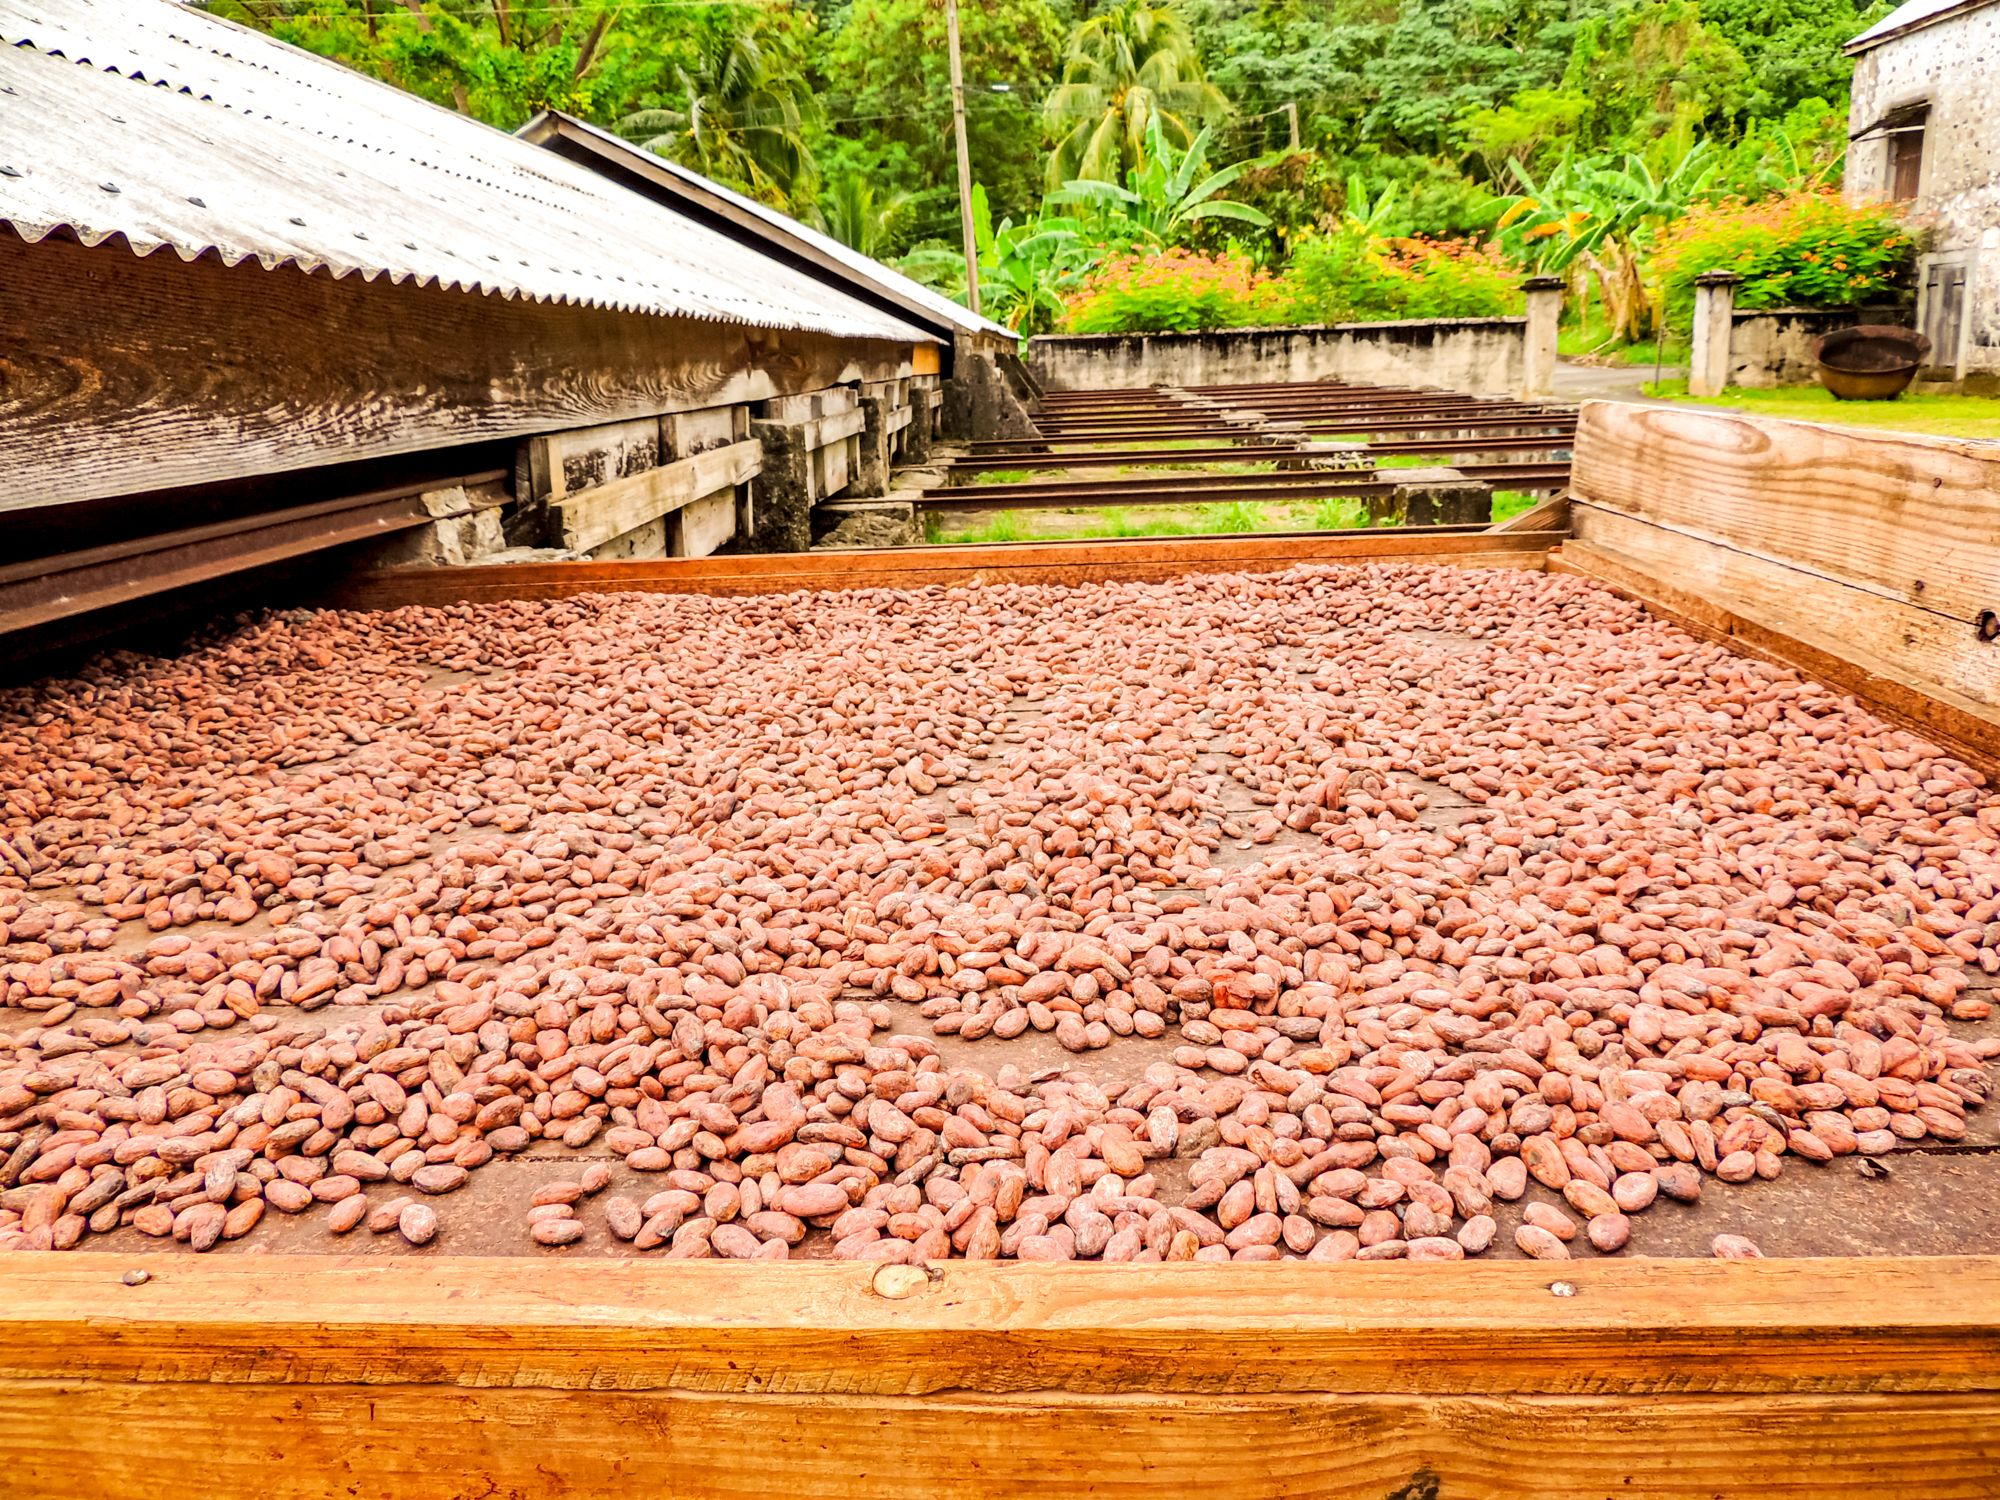 Chocolate Production Grenada